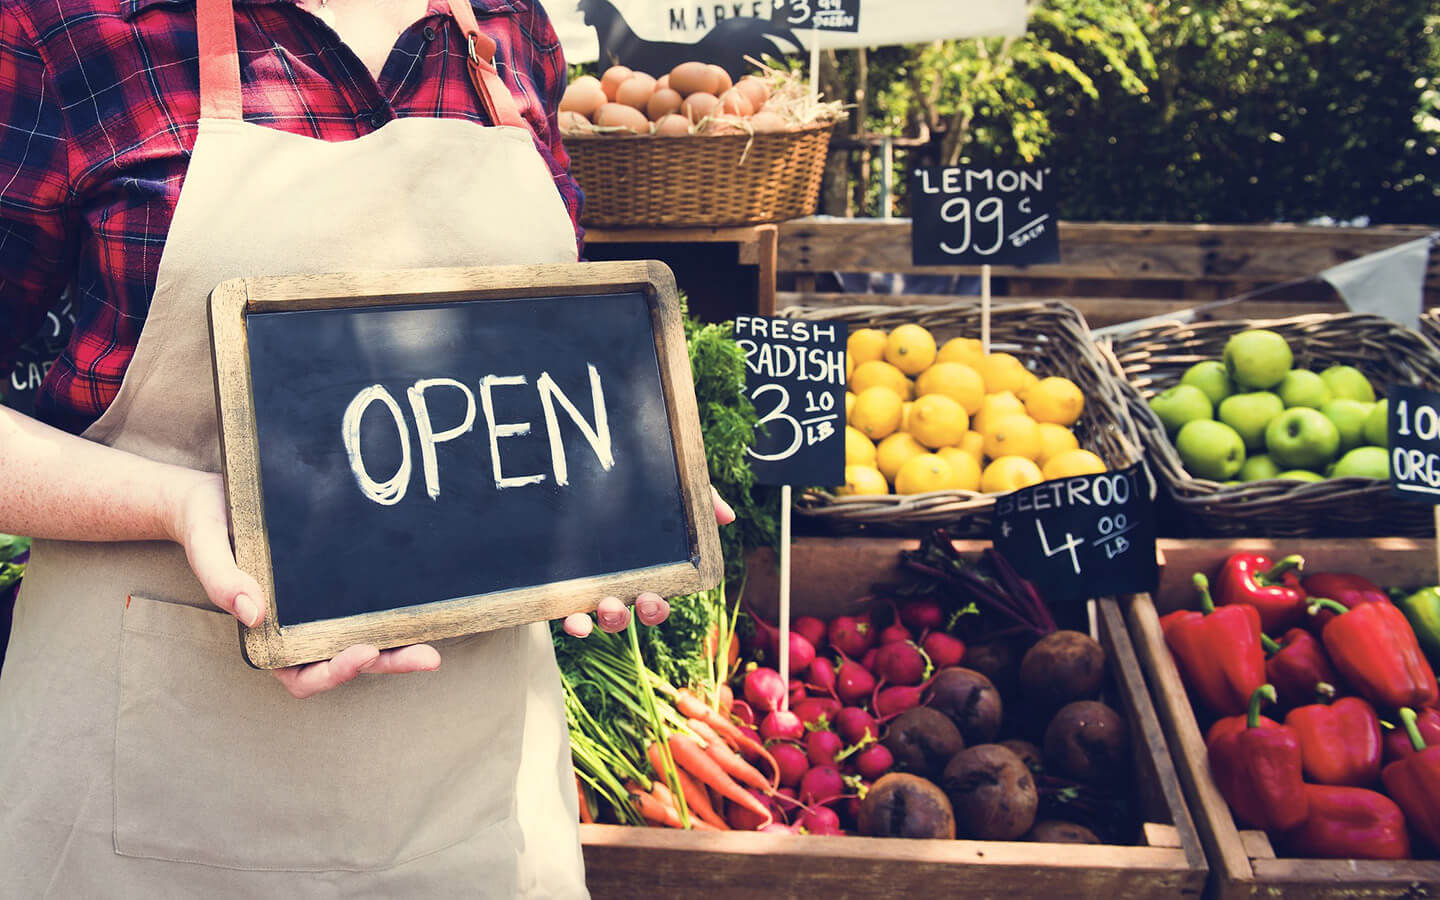 Farmers market with person holding an 'Open' sign